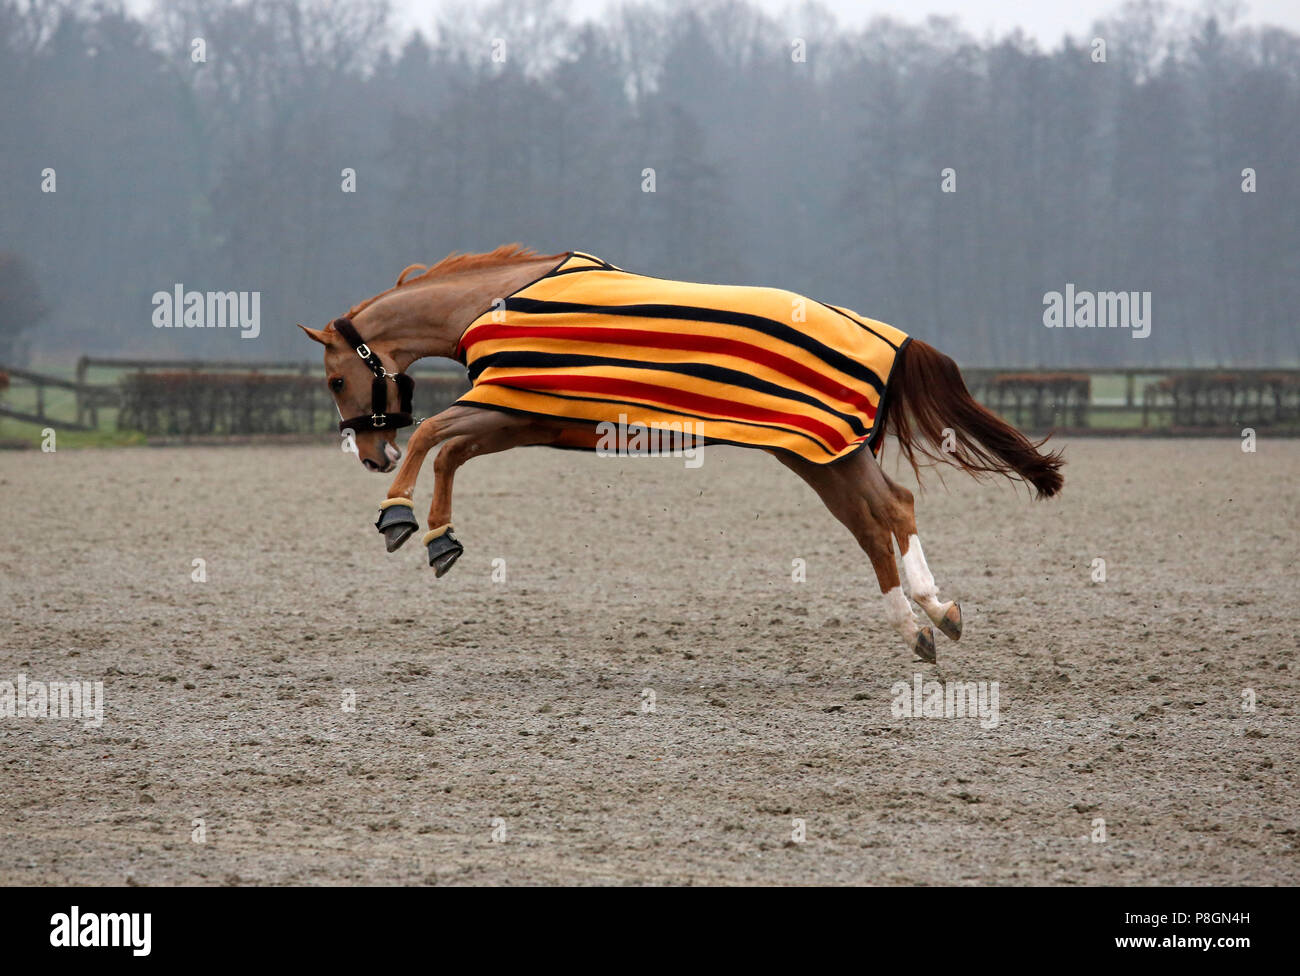 Neustadt (Dosse), horse with blanket hunched on a riding field - Stock Image